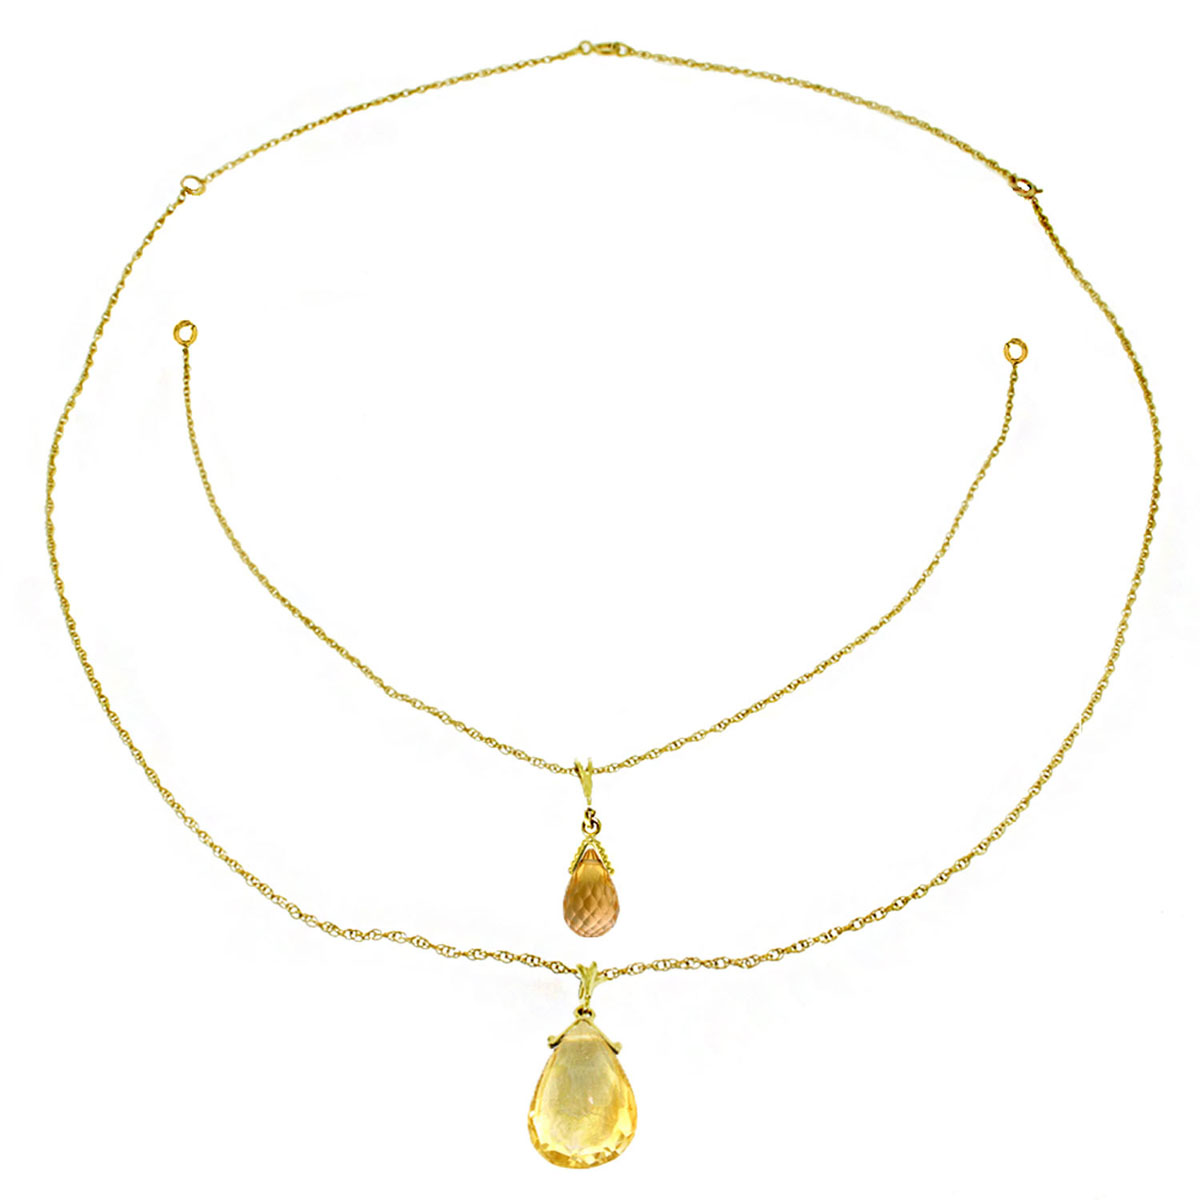 Citrine Back Drop Pendant Necklace 7.5 ctw in 9ct Gold